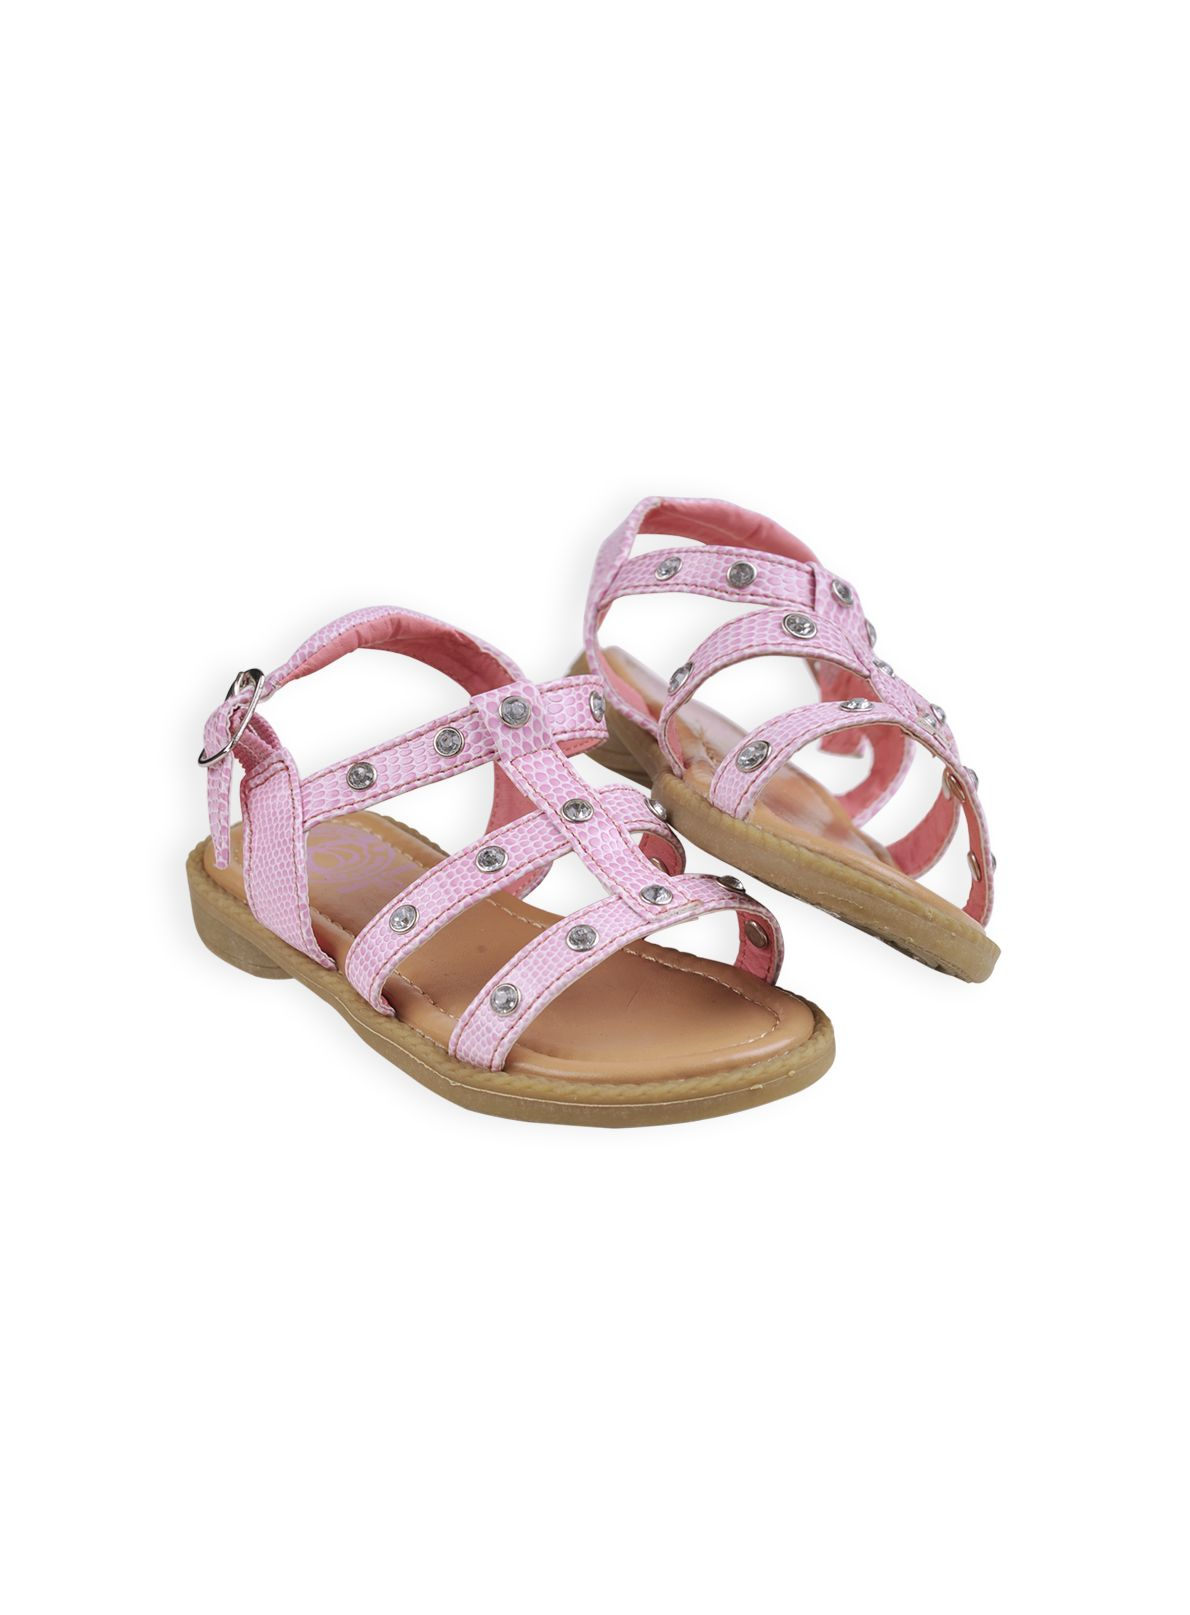 Girls gladiator sandal